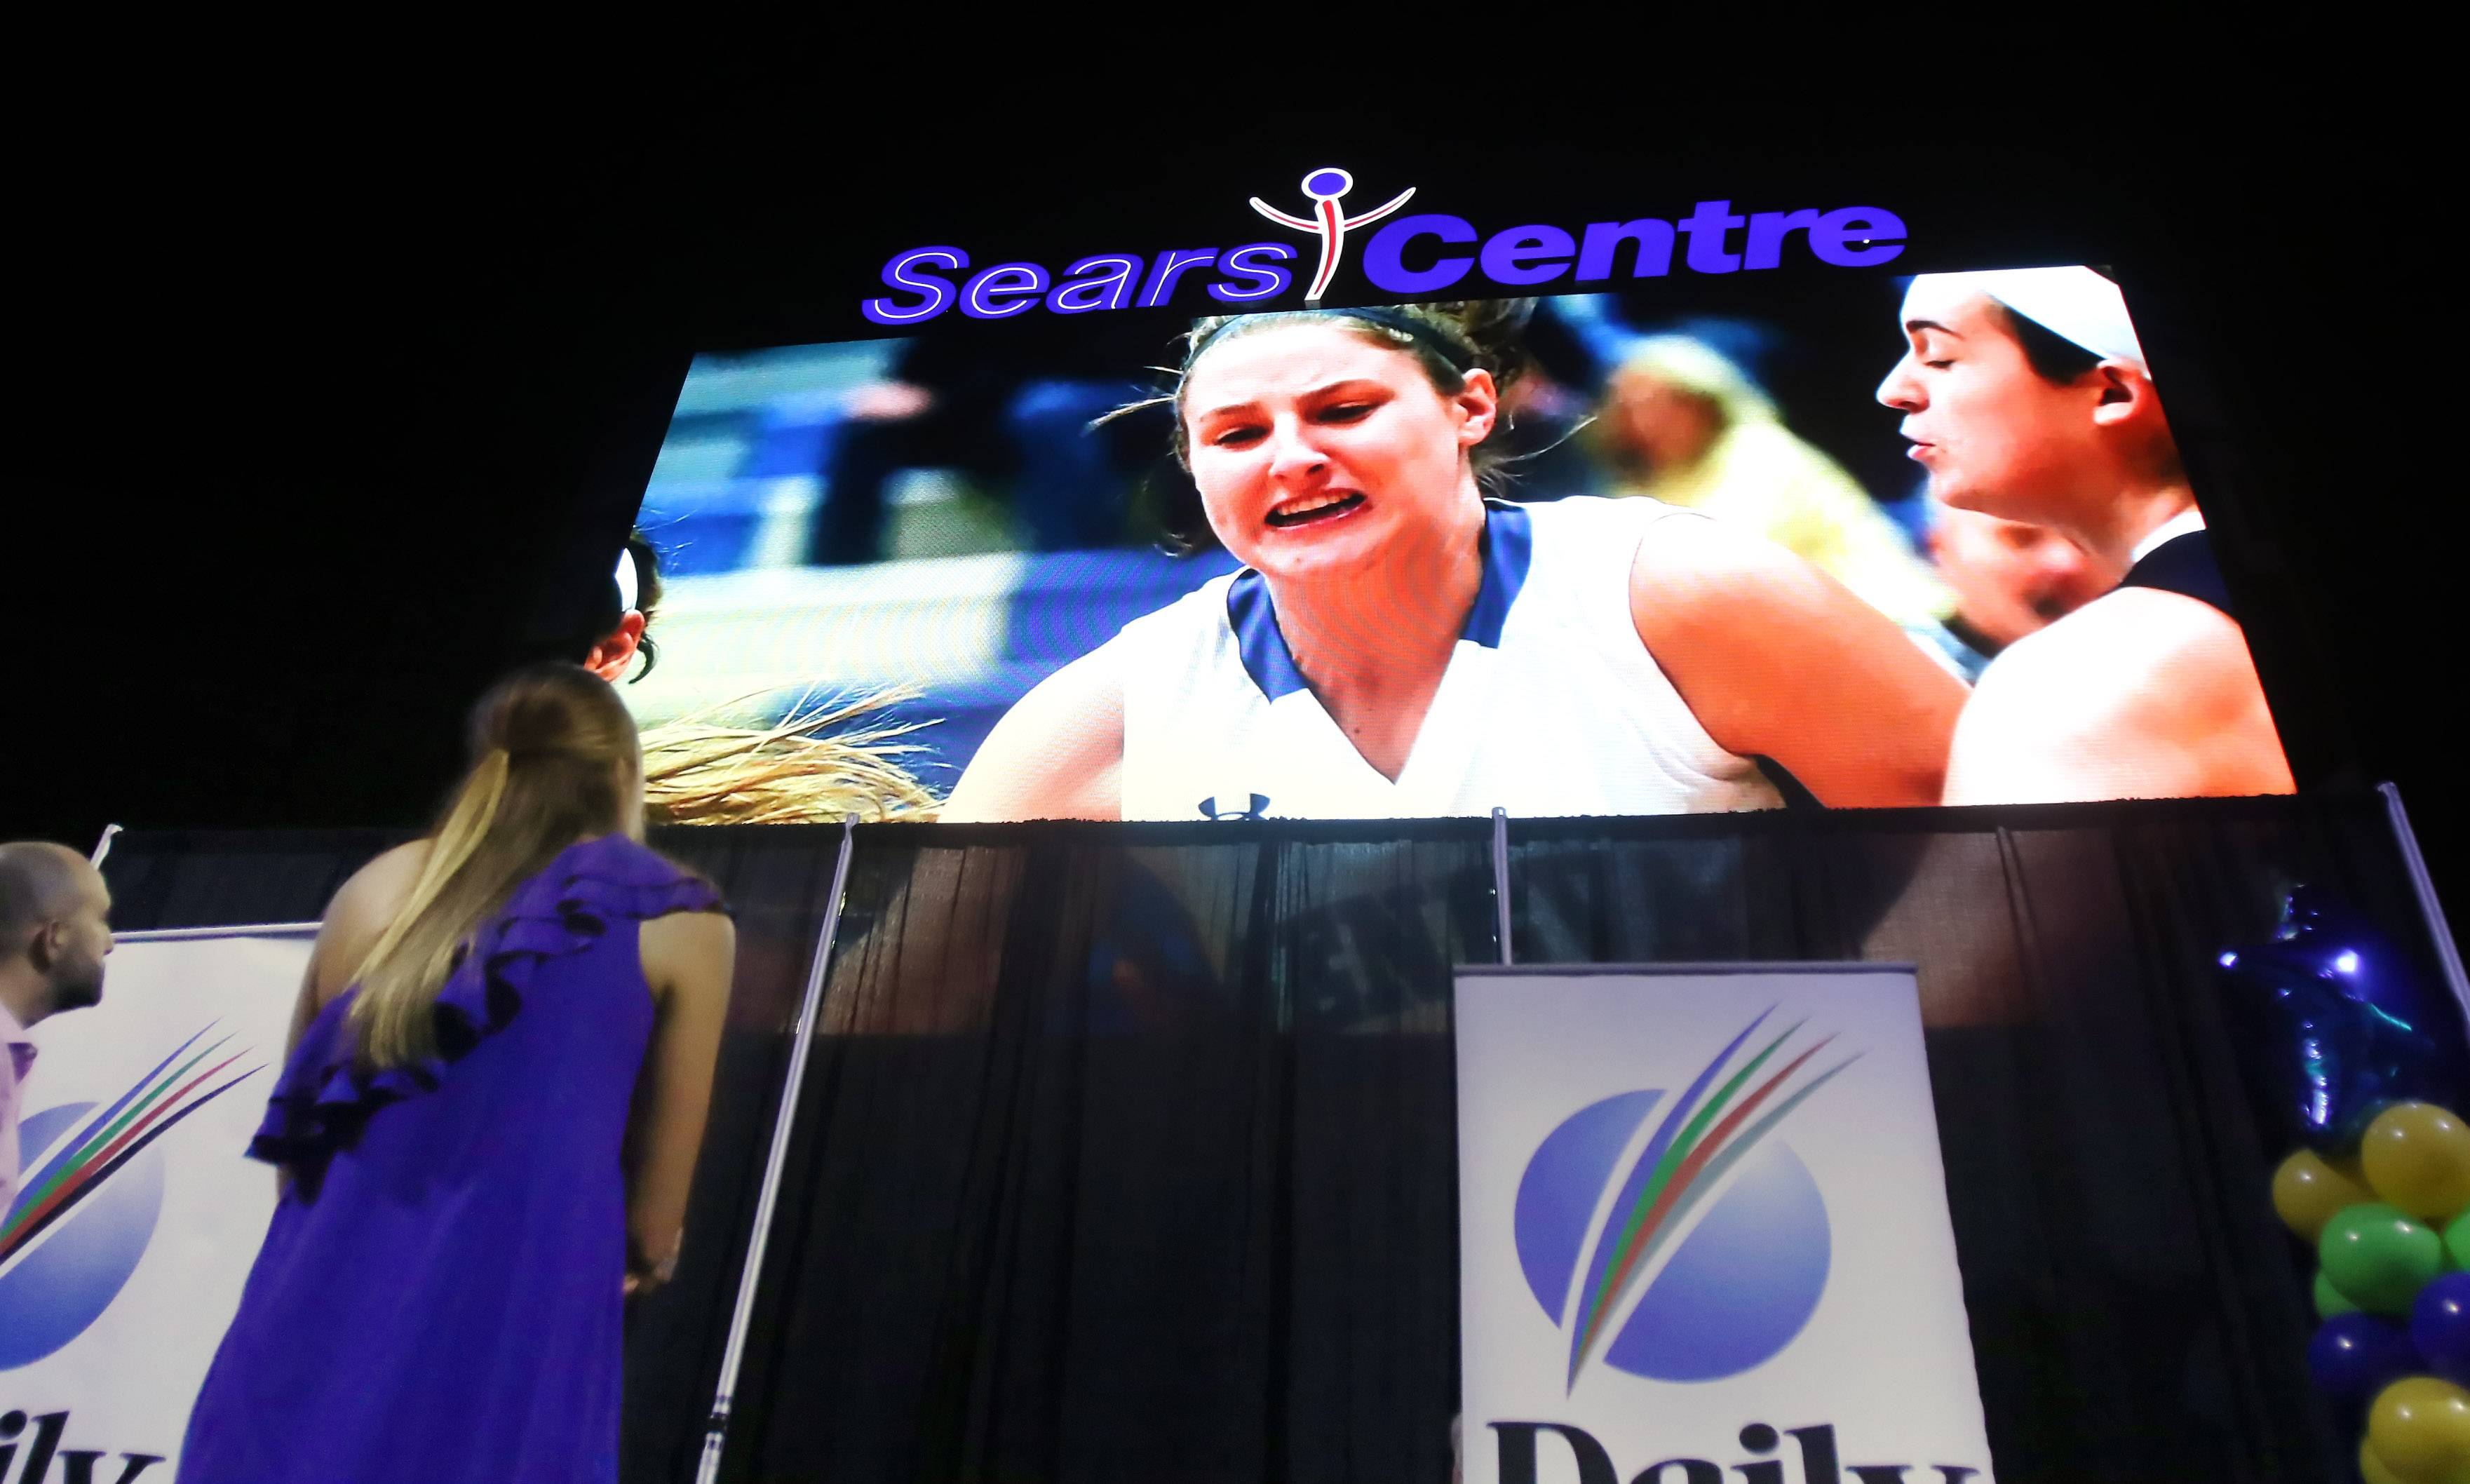 Geneva High School athlete Grace Loberg watches a video of her highlights after winning Sweetest Moment award during the Daily Herald Preps Sports Excellence Awards Monday night at the Sears Centre Arena in Hoffman Estates. About 1,000 people attended the banquet recognizing the best athletes and coaches in the area for the past school year.